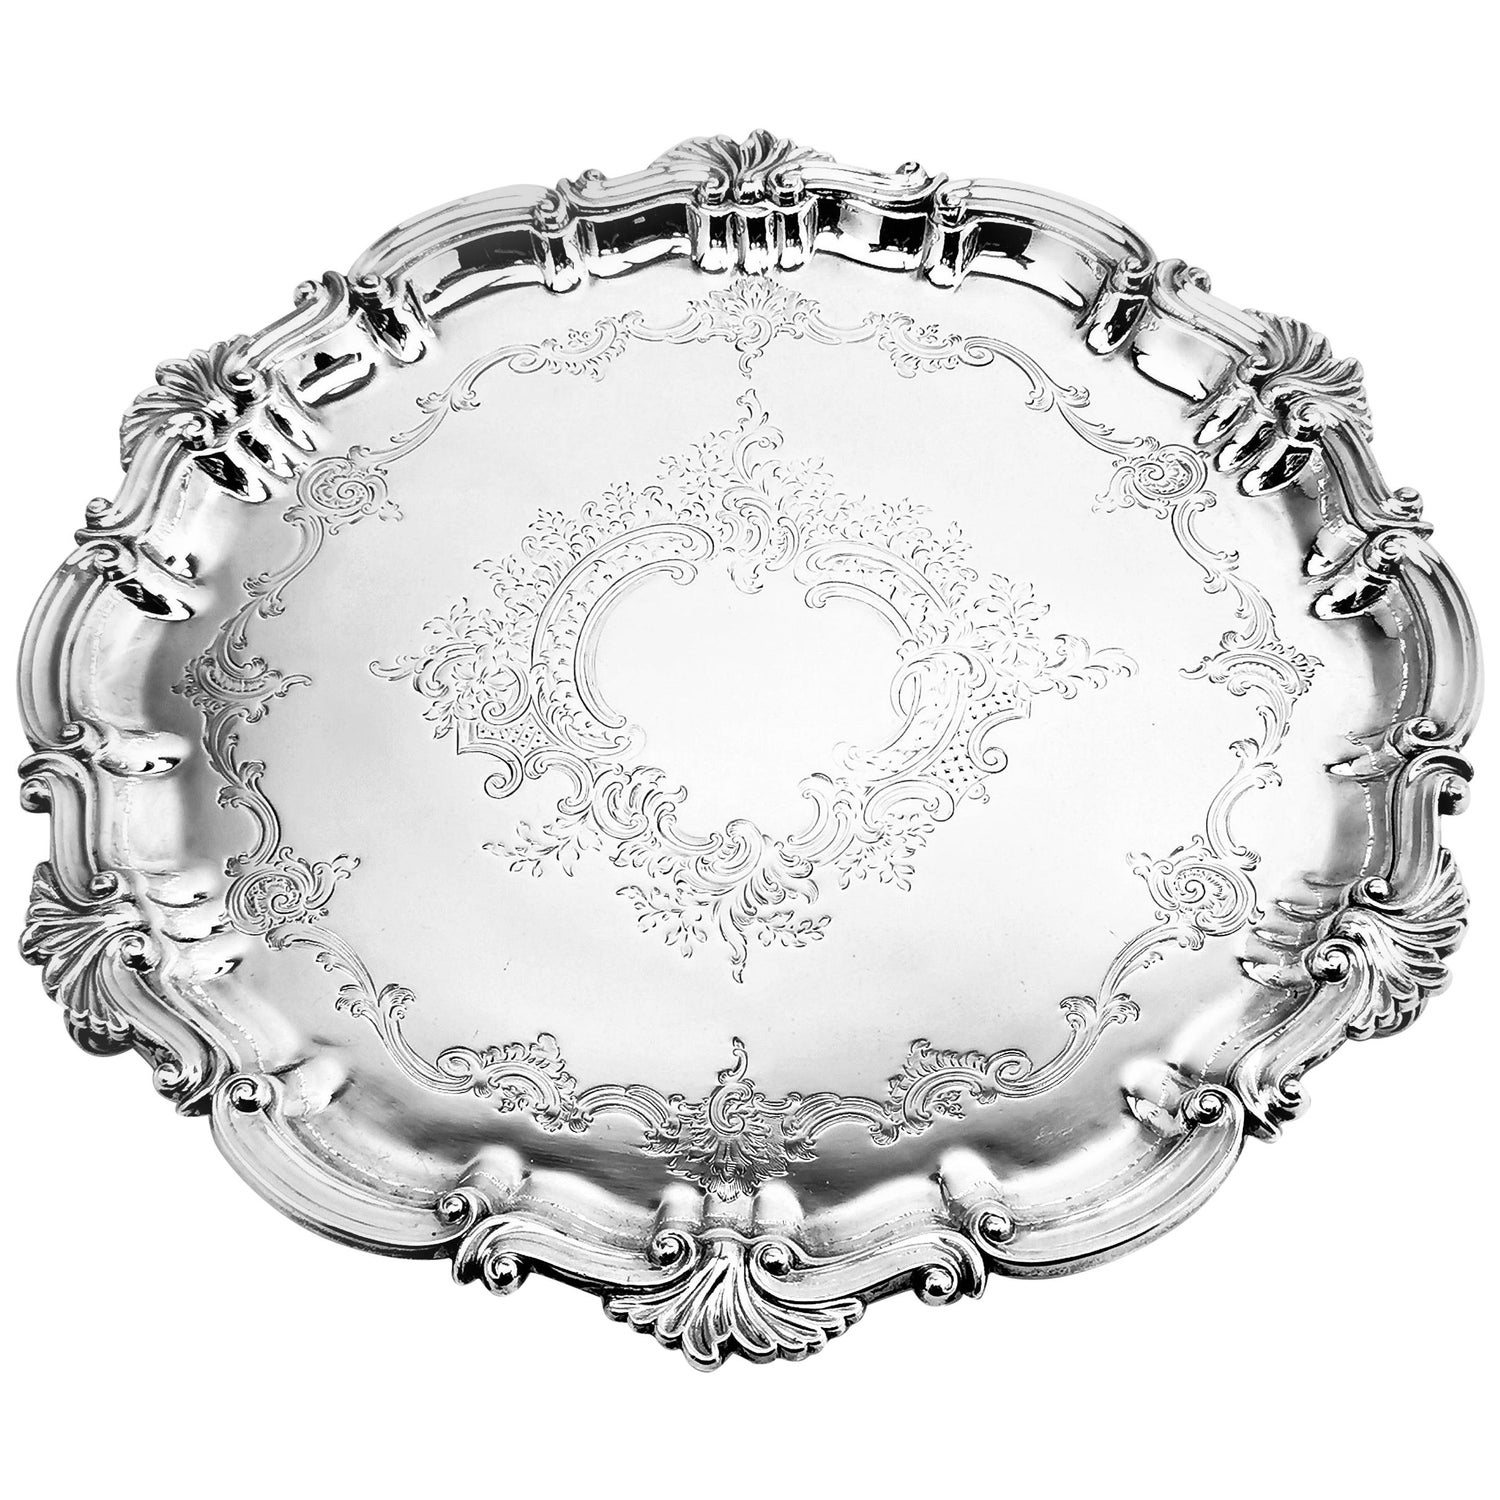 Antique Victorian Silver Salver, 1896